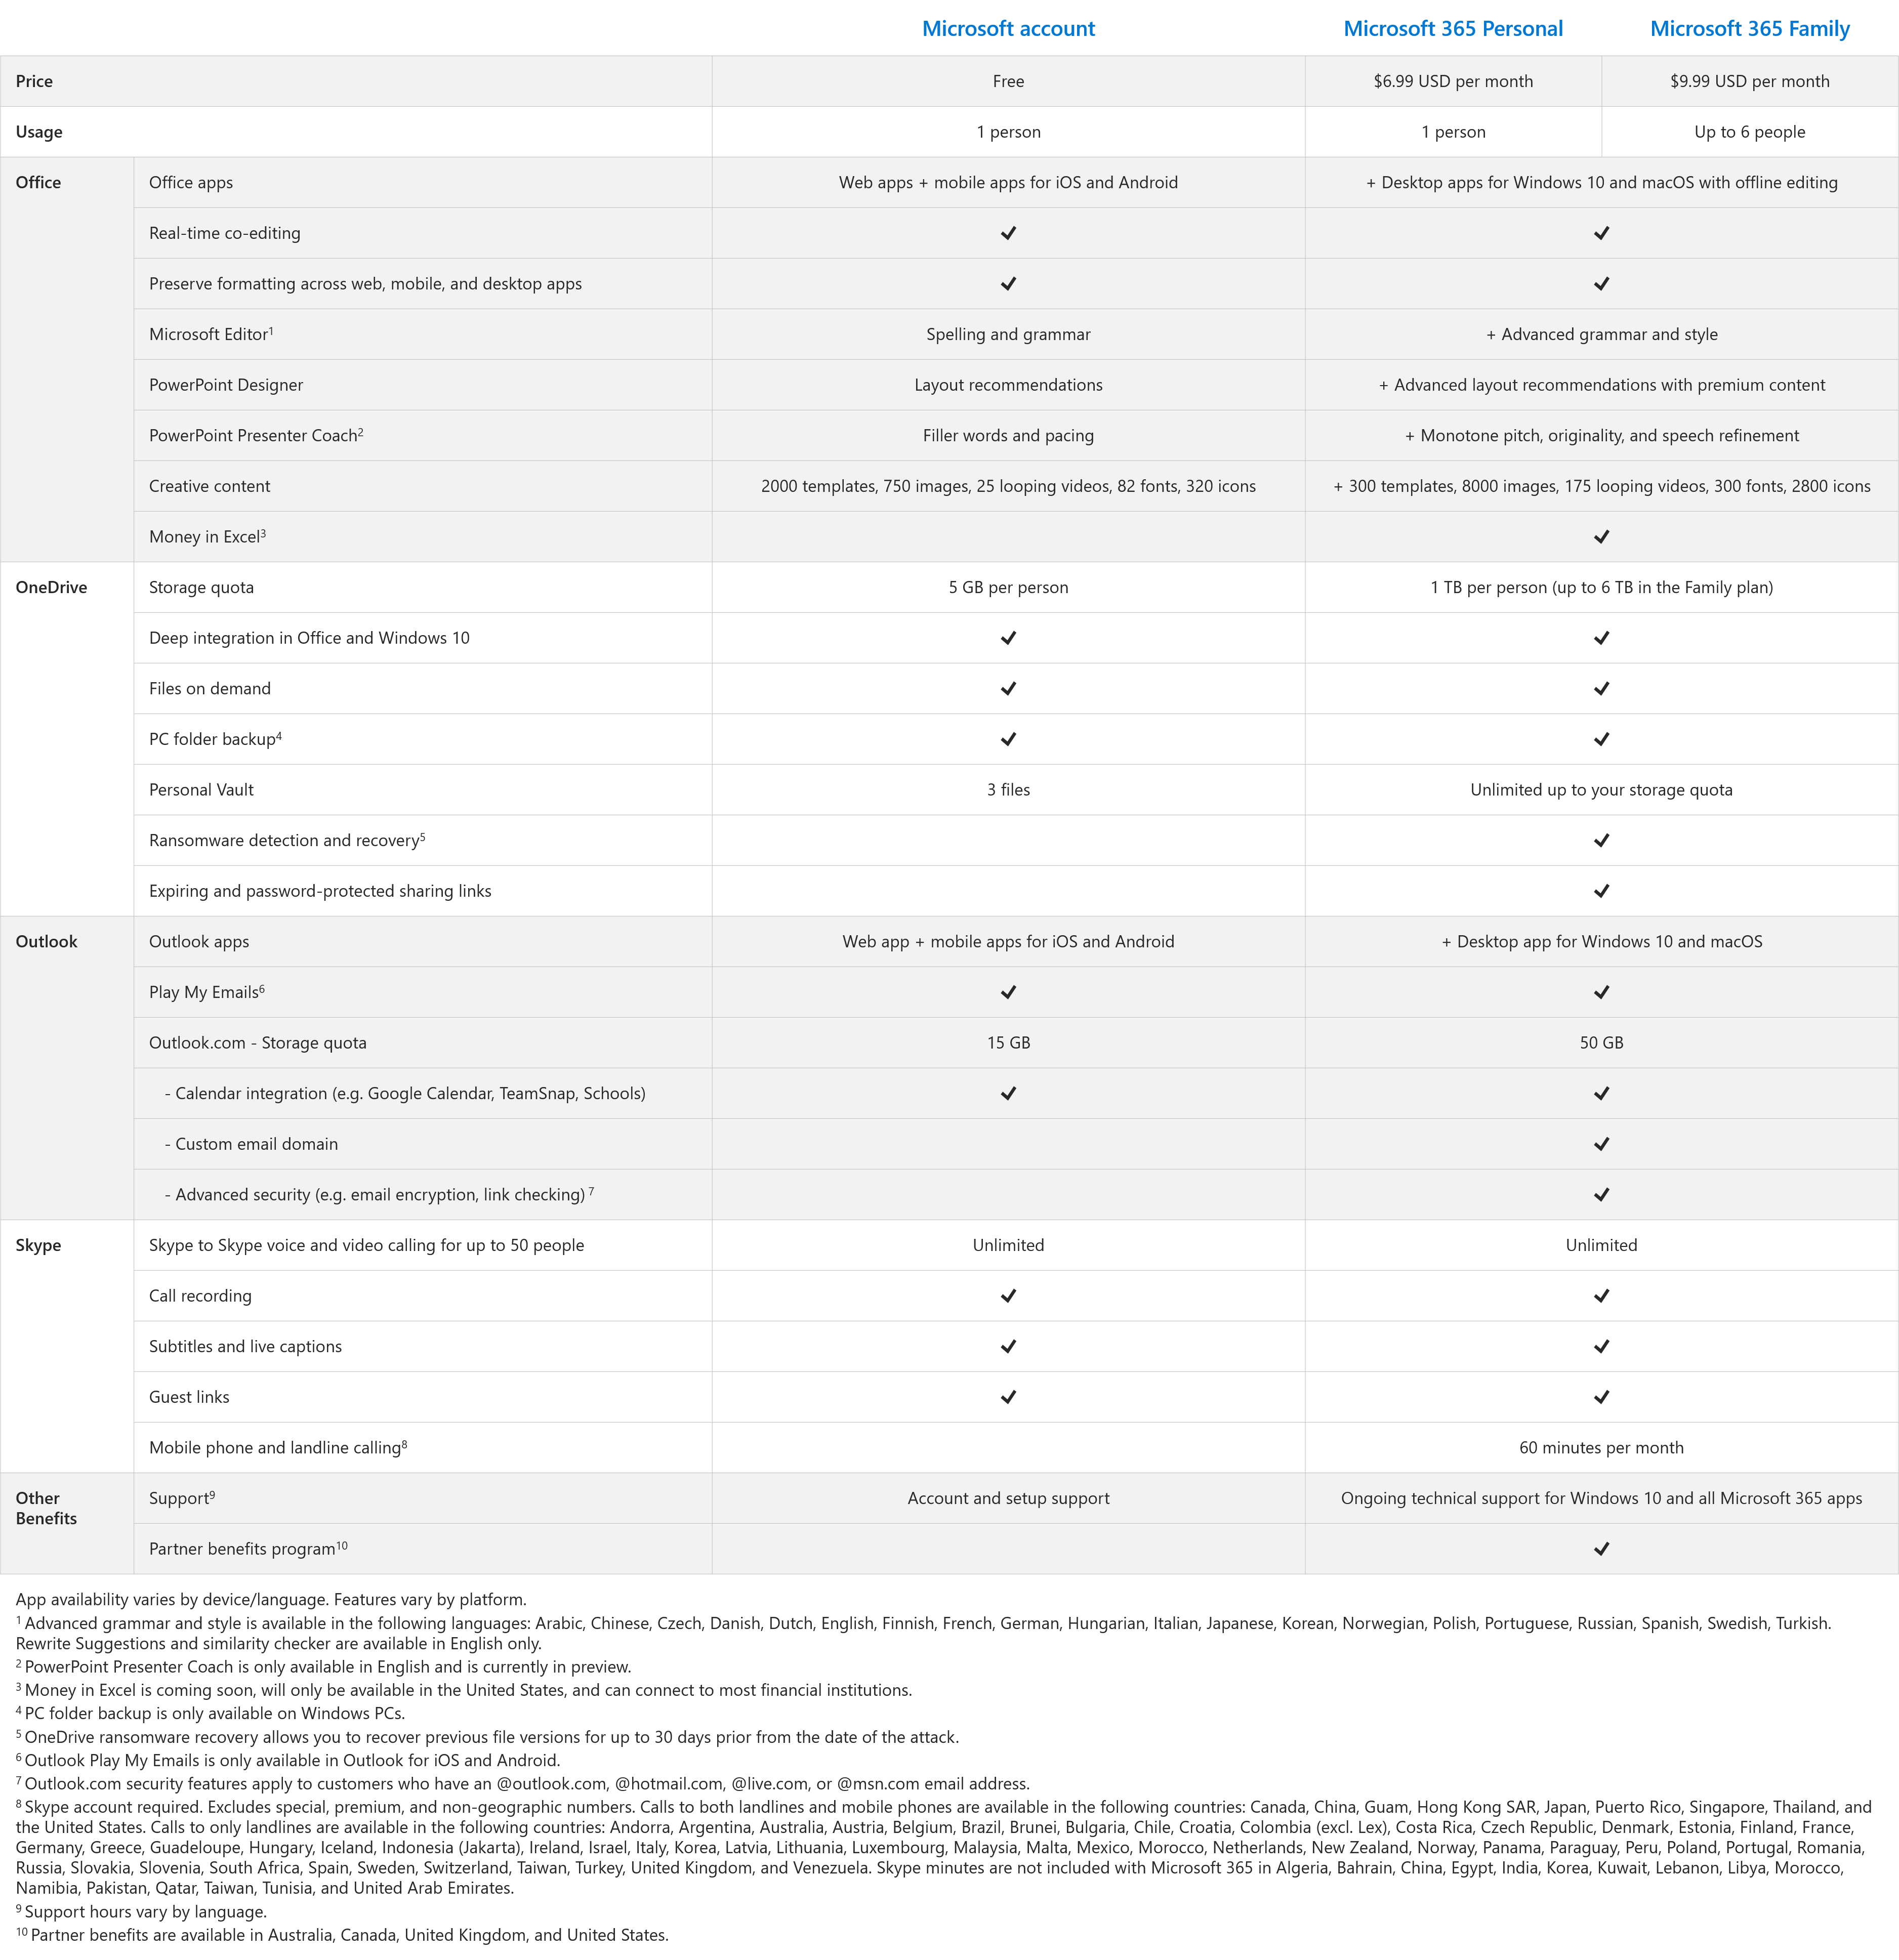 A table that compares what you get for free with a Microsoft account vs. a Microsoft 365 subscription